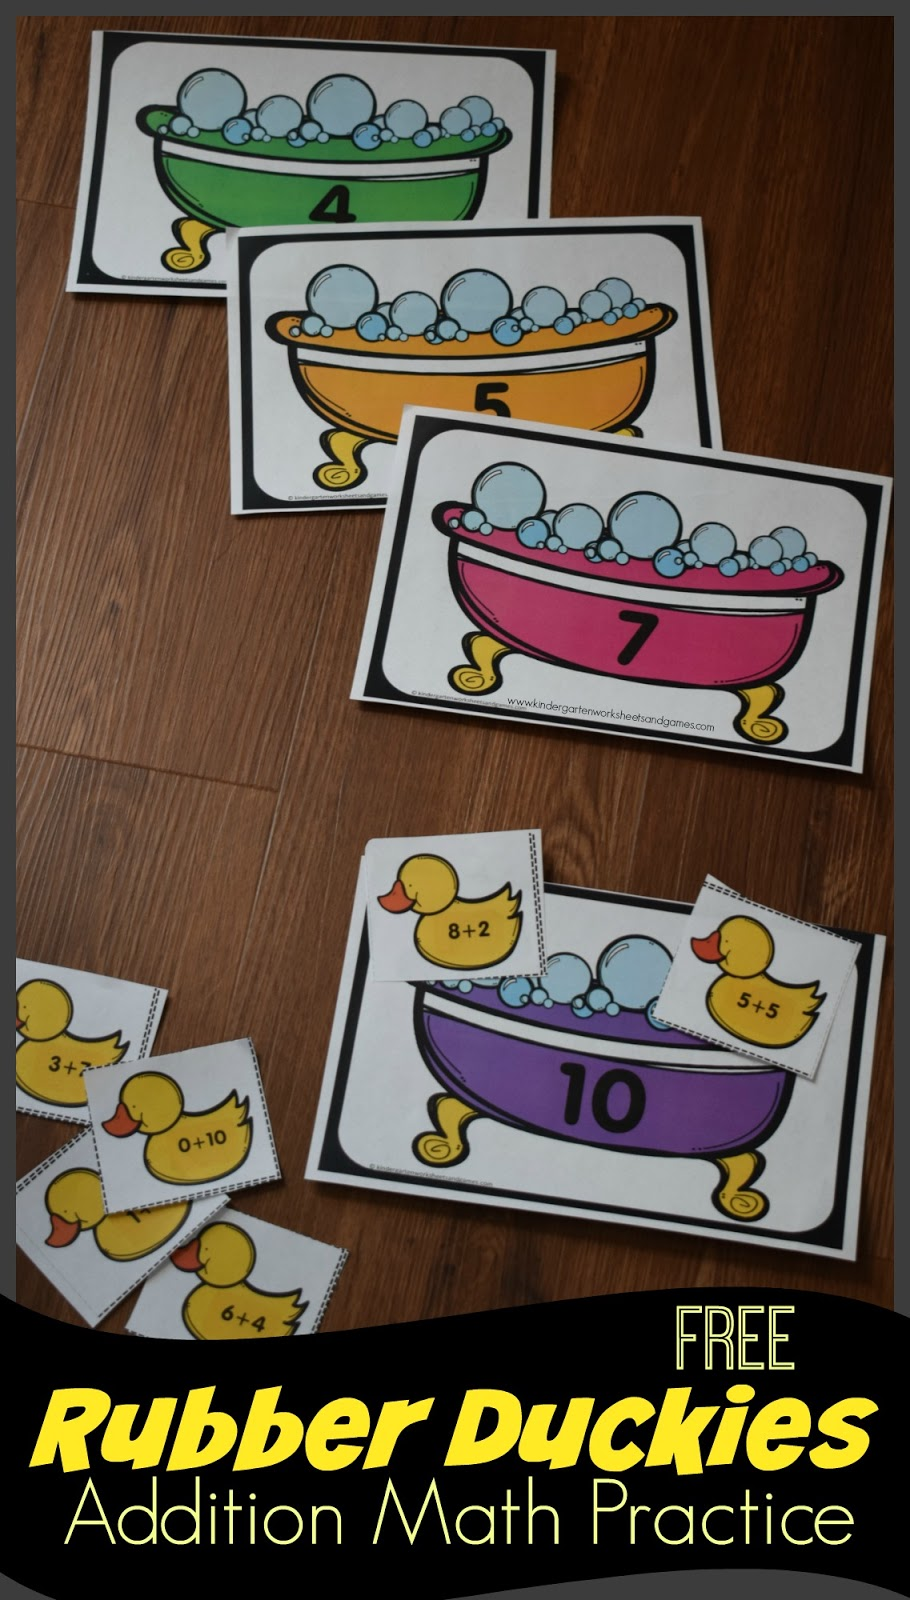 Kindergarten Worksheets and Games: FREE Rubber Duckies Addition Math ...